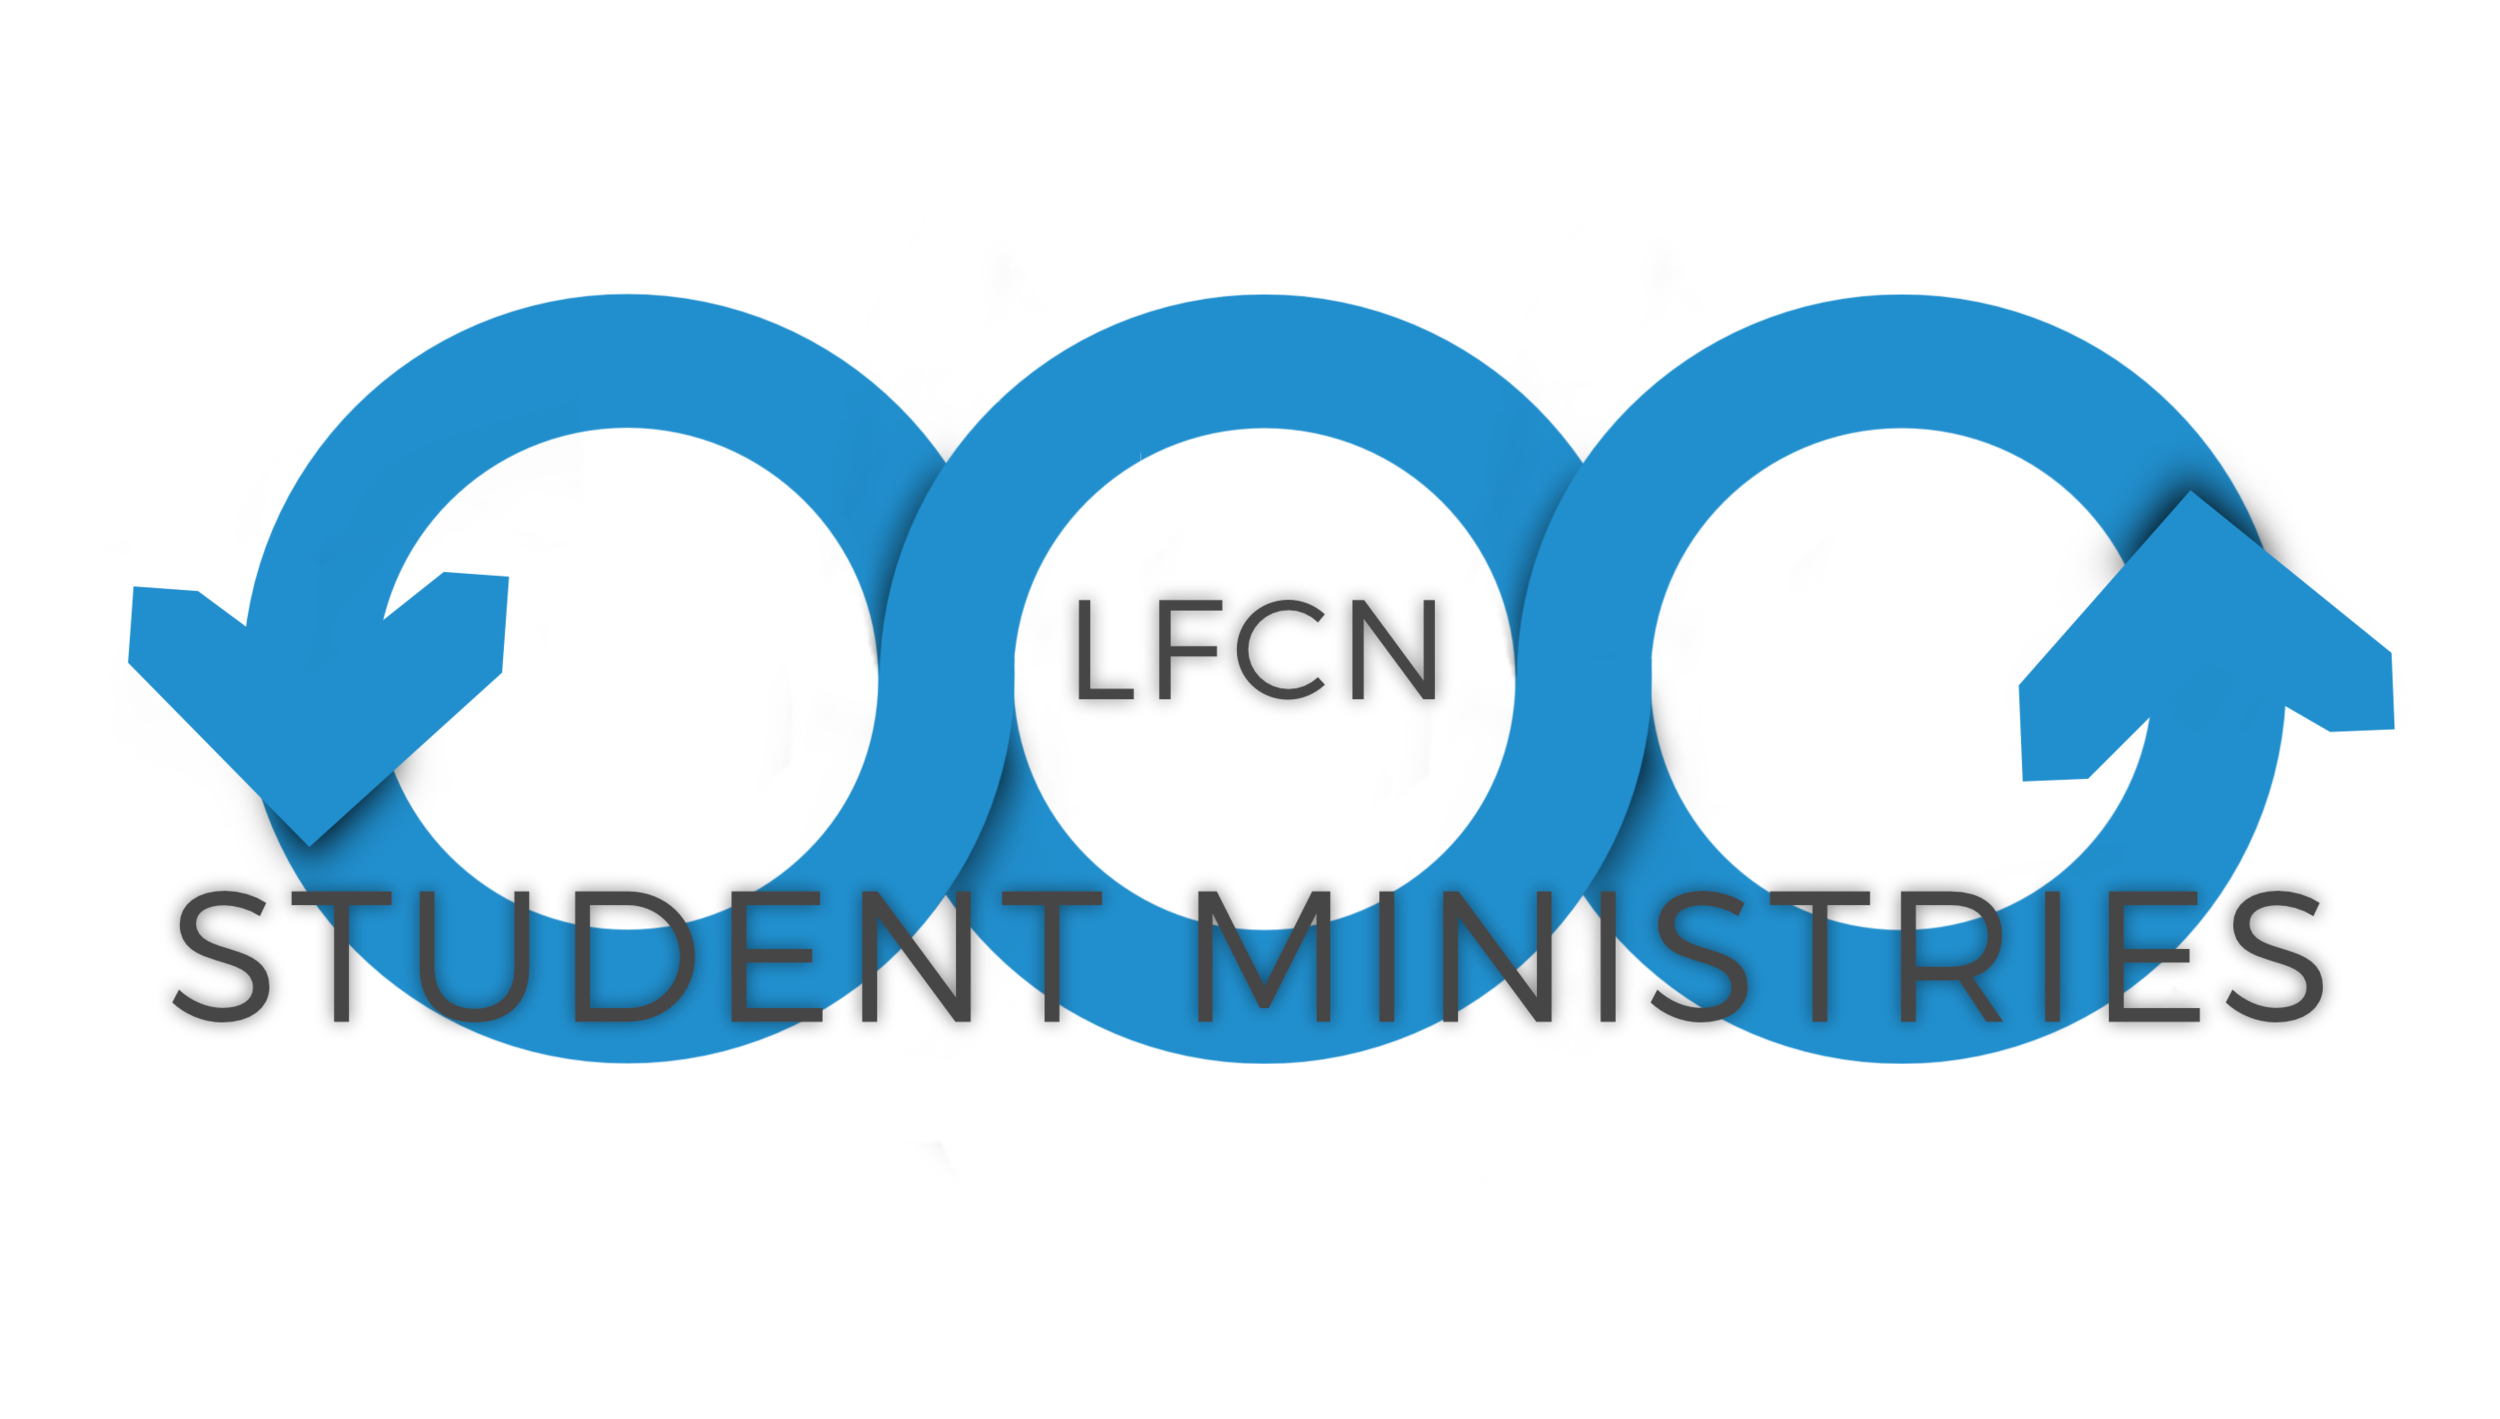 LFCN Student Ministries Logo 1 png.png